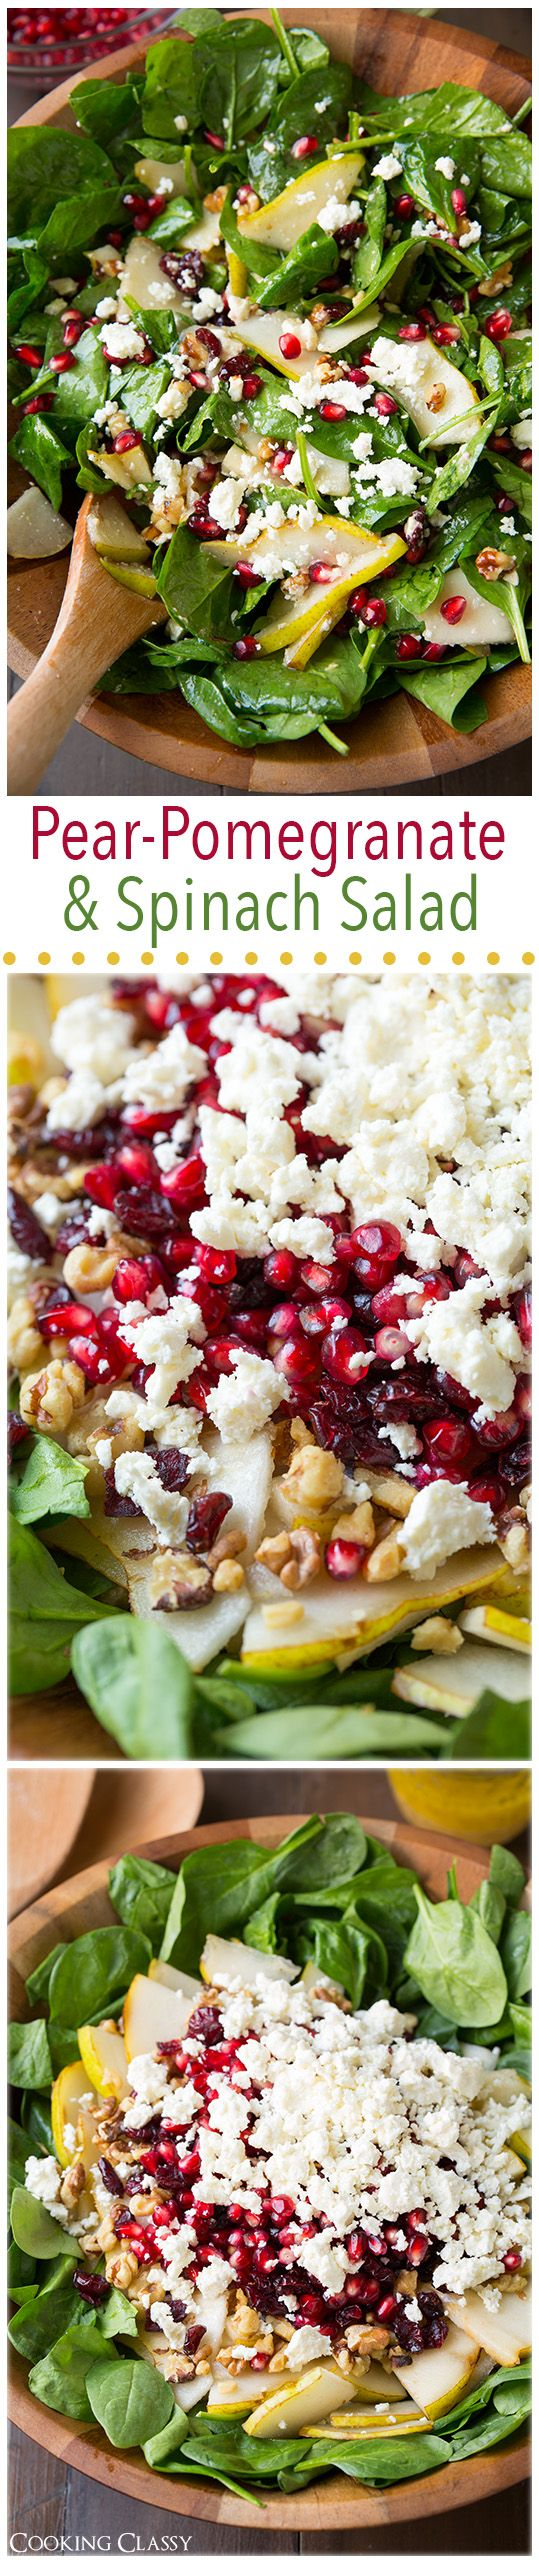 Most Pinned Salad Recipe on Pinterest 6